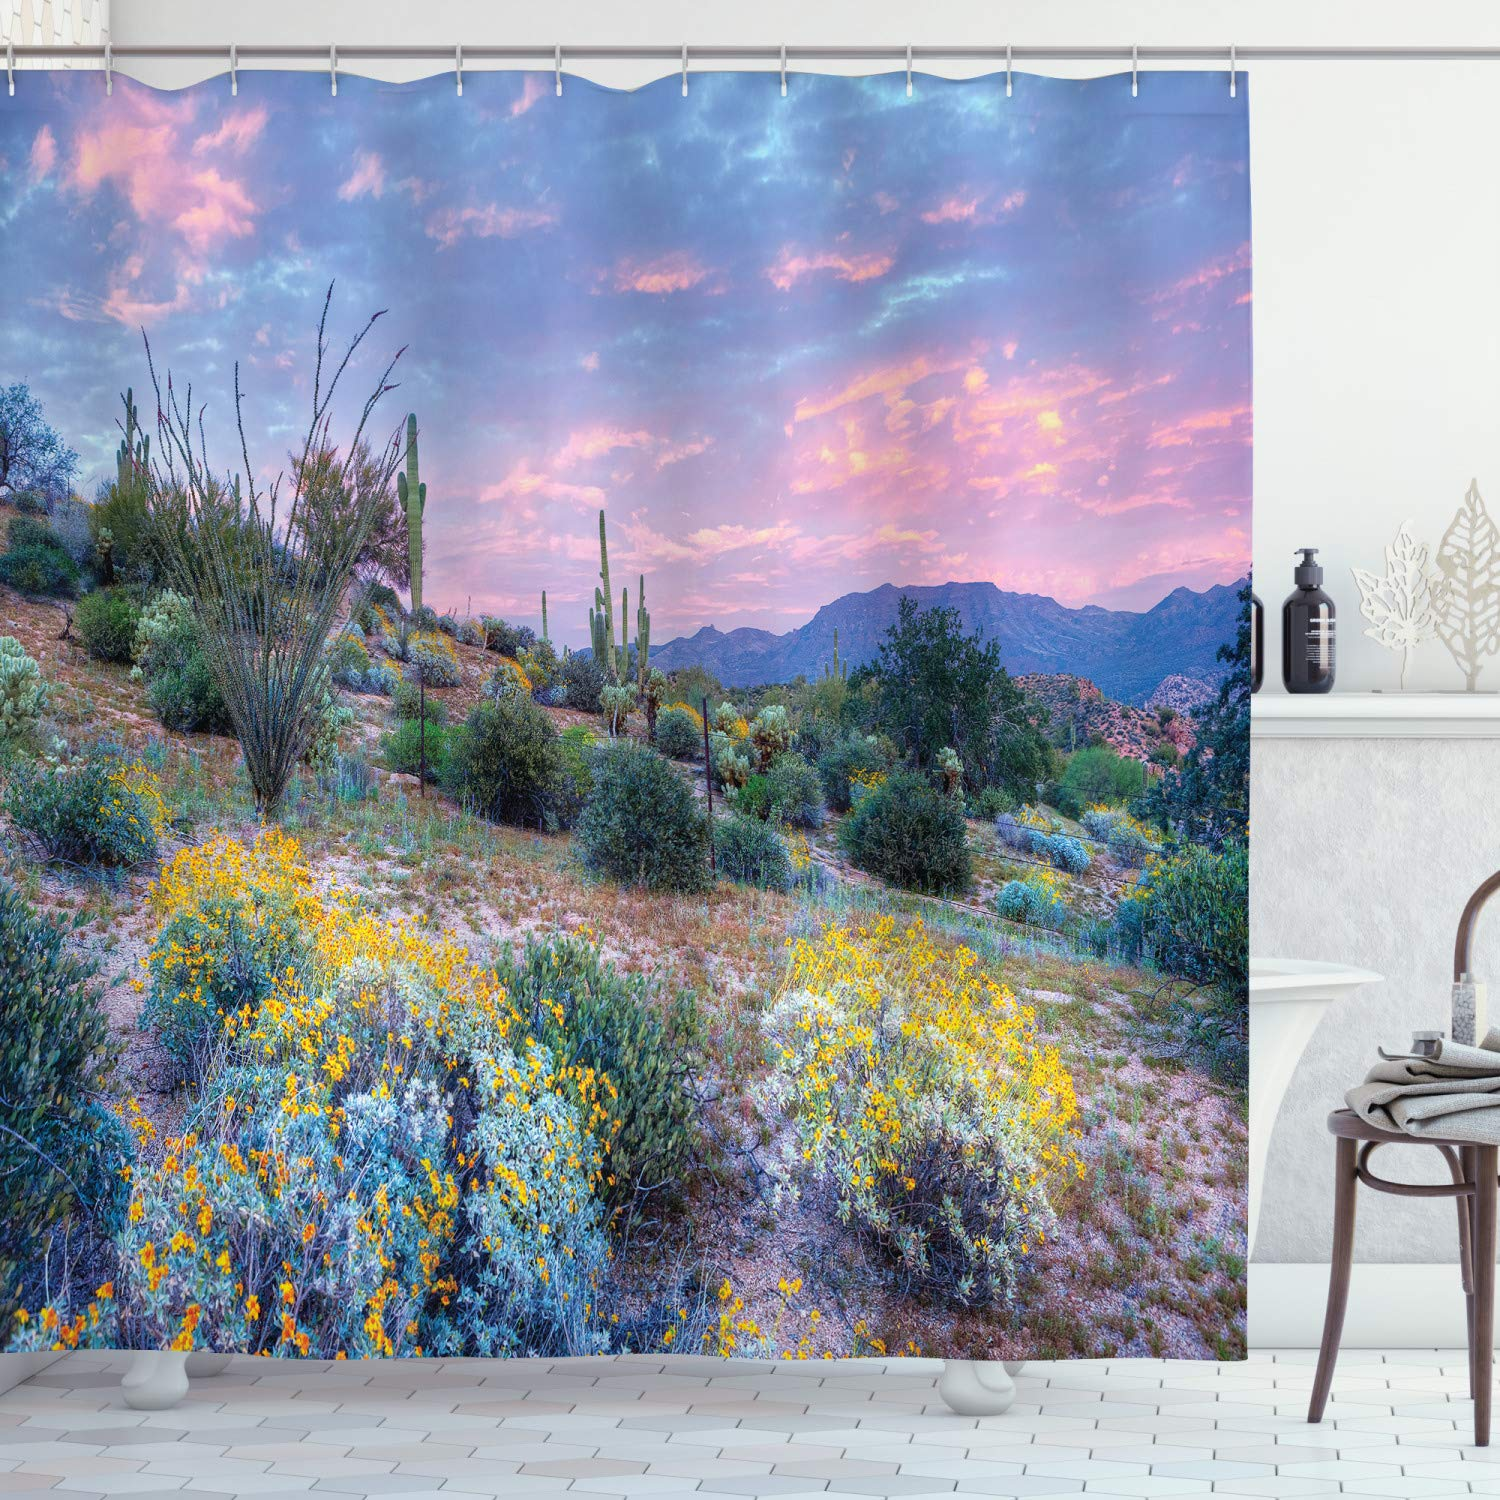 """Ambesonne Cactus Shower Curtain, Sunset in a Mountain with Sun Beams Clouds Bushes and Colored Flowers Photo Print, Cloth Fabric Bathroom Decor Set with Hooks, 84"""" Long Extra, Green Mauve"""